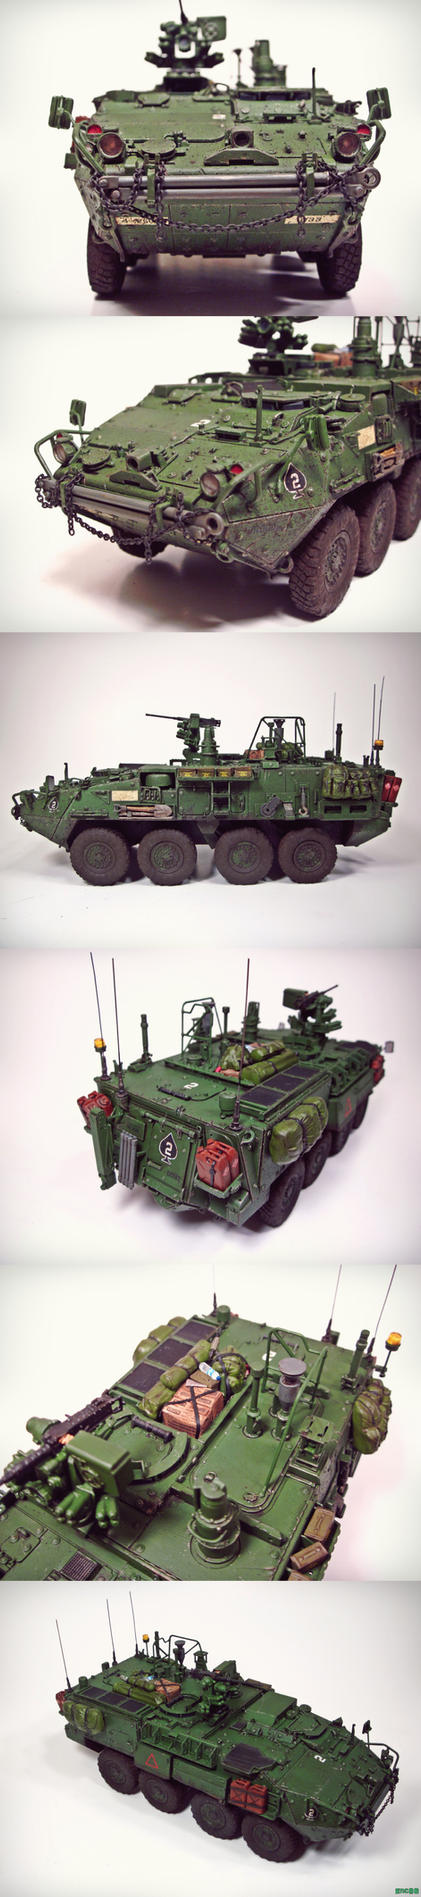 Stryker Collage by enc86